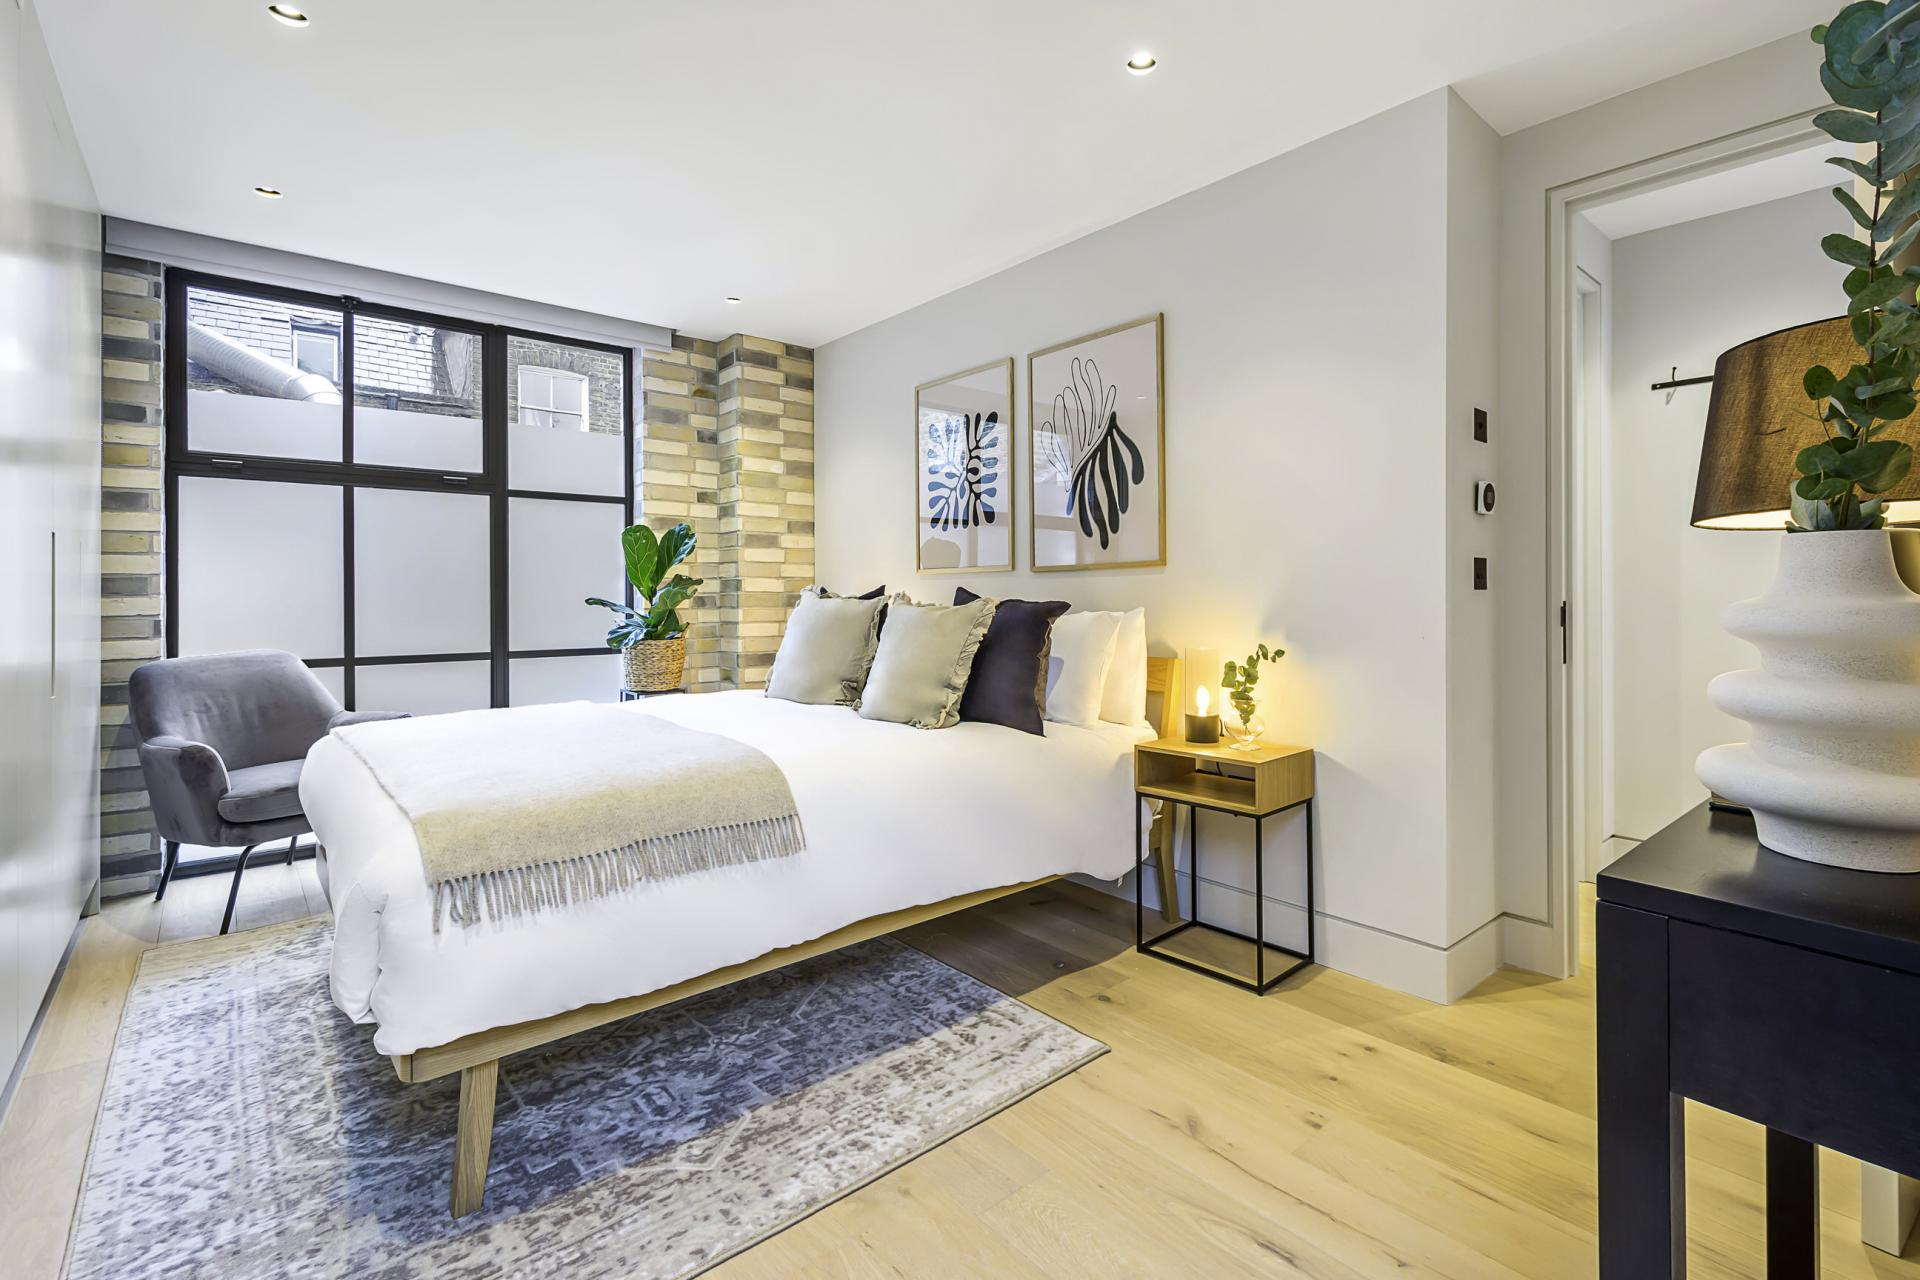 Double bed at King's Mews Apartments, Holborn, London - Citybase Apartments